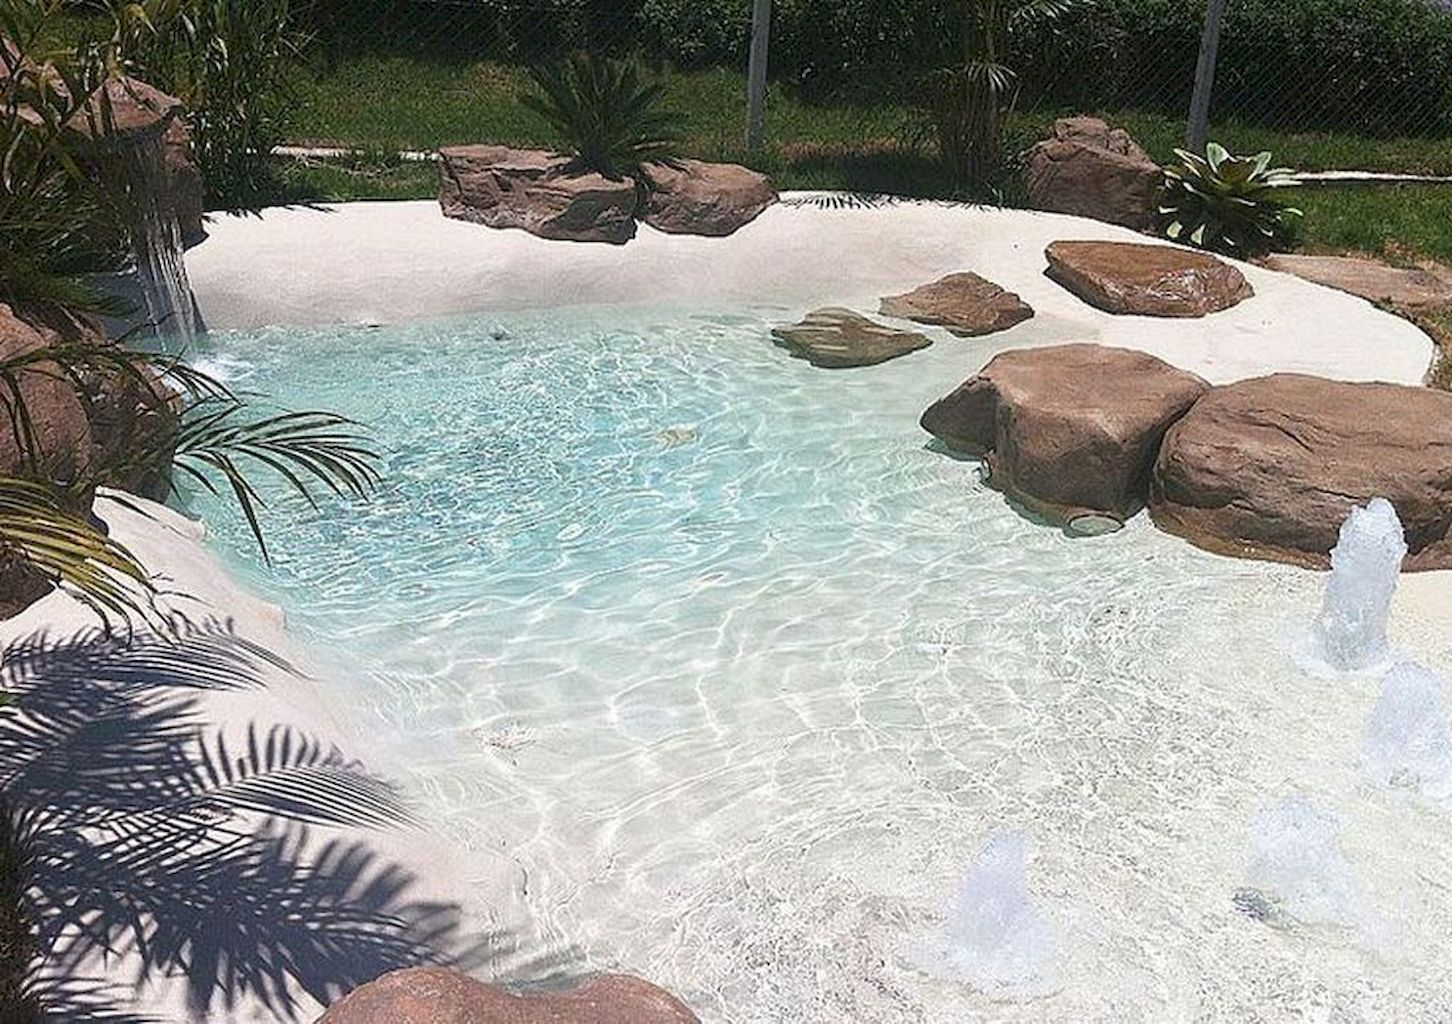 90 Best Swimming Pool Ideas For Small Backyard 99decor Cool Swimming Pools Small Pool Design Pool Landscaping